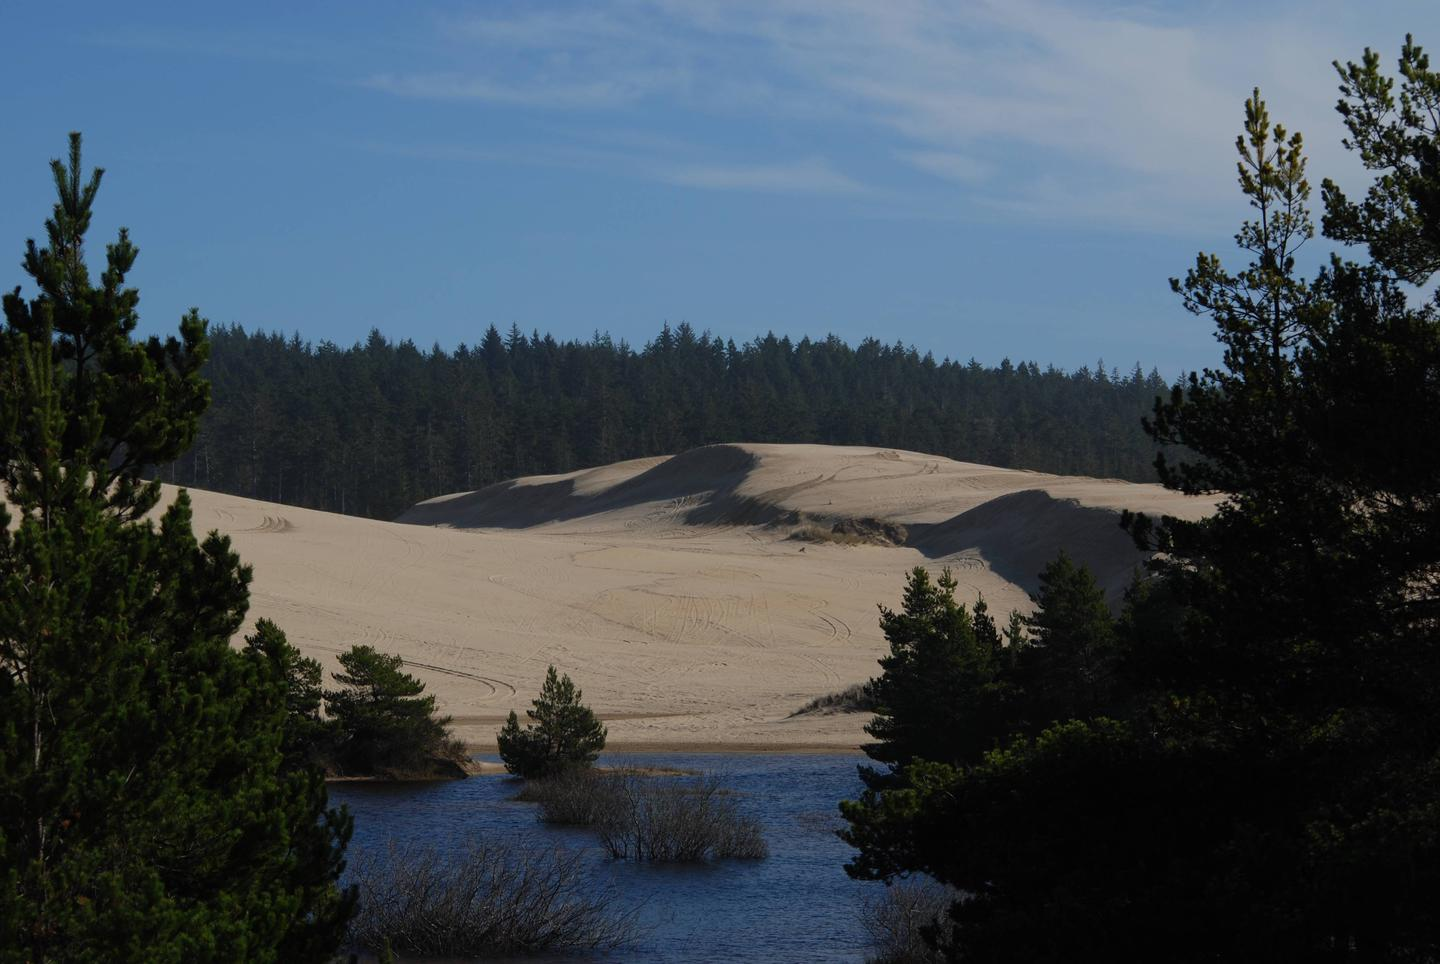 Shore pines and blue lake with sand dunes and conifer covered hills in background.Spinreel Sand Camping